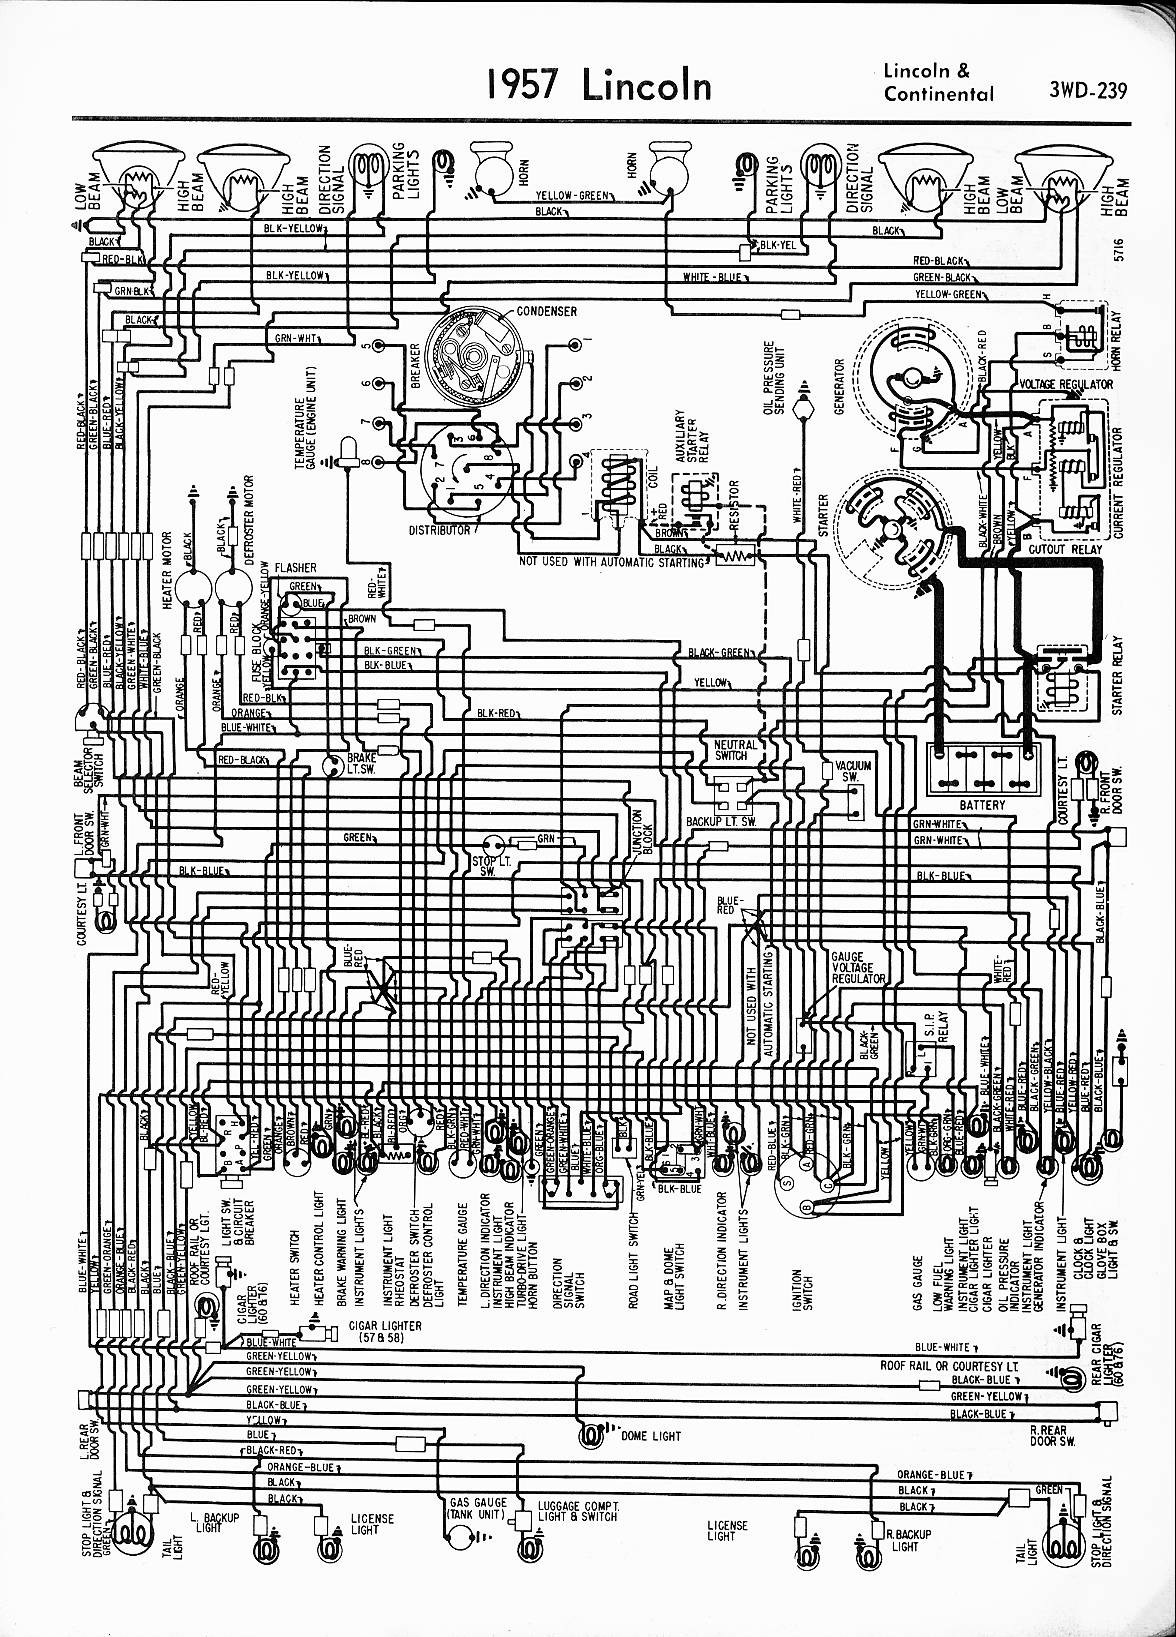 2001 Lincoln Ls Engine Diagram Lincoln Wiring Diagram Schema Wiring Diagram Of 2001 Lincoln Ls Engine Diagram